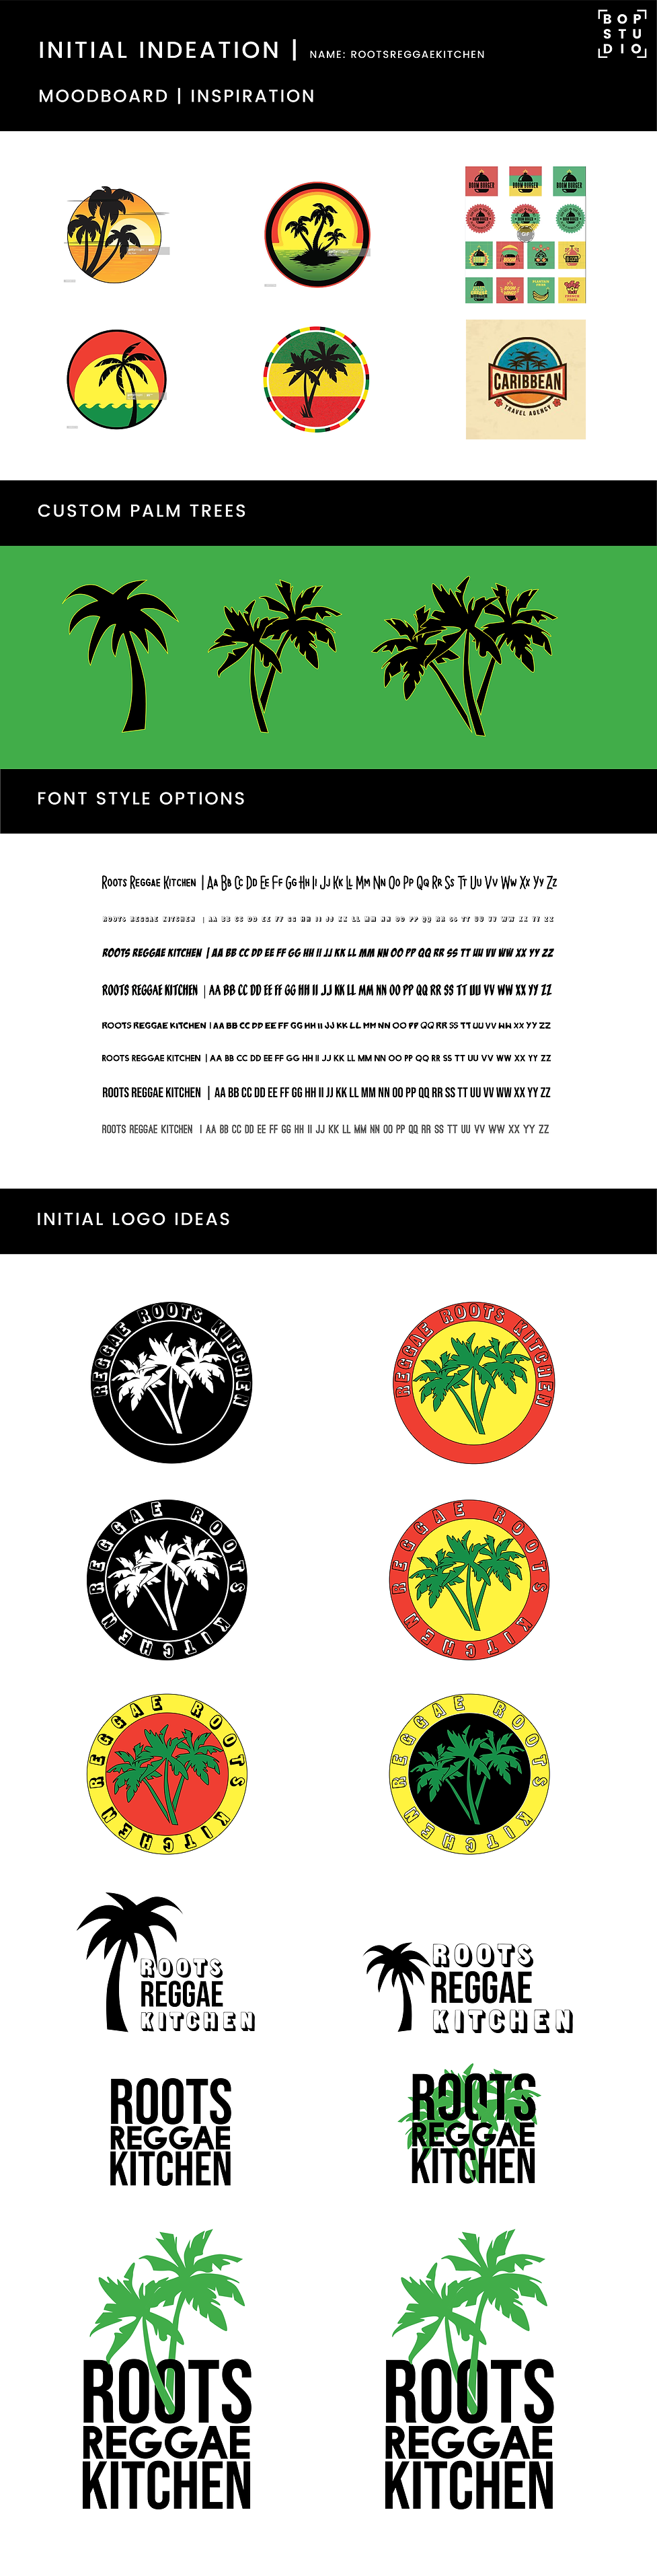 LOGO IDEATION FOR ROOTS-01.png